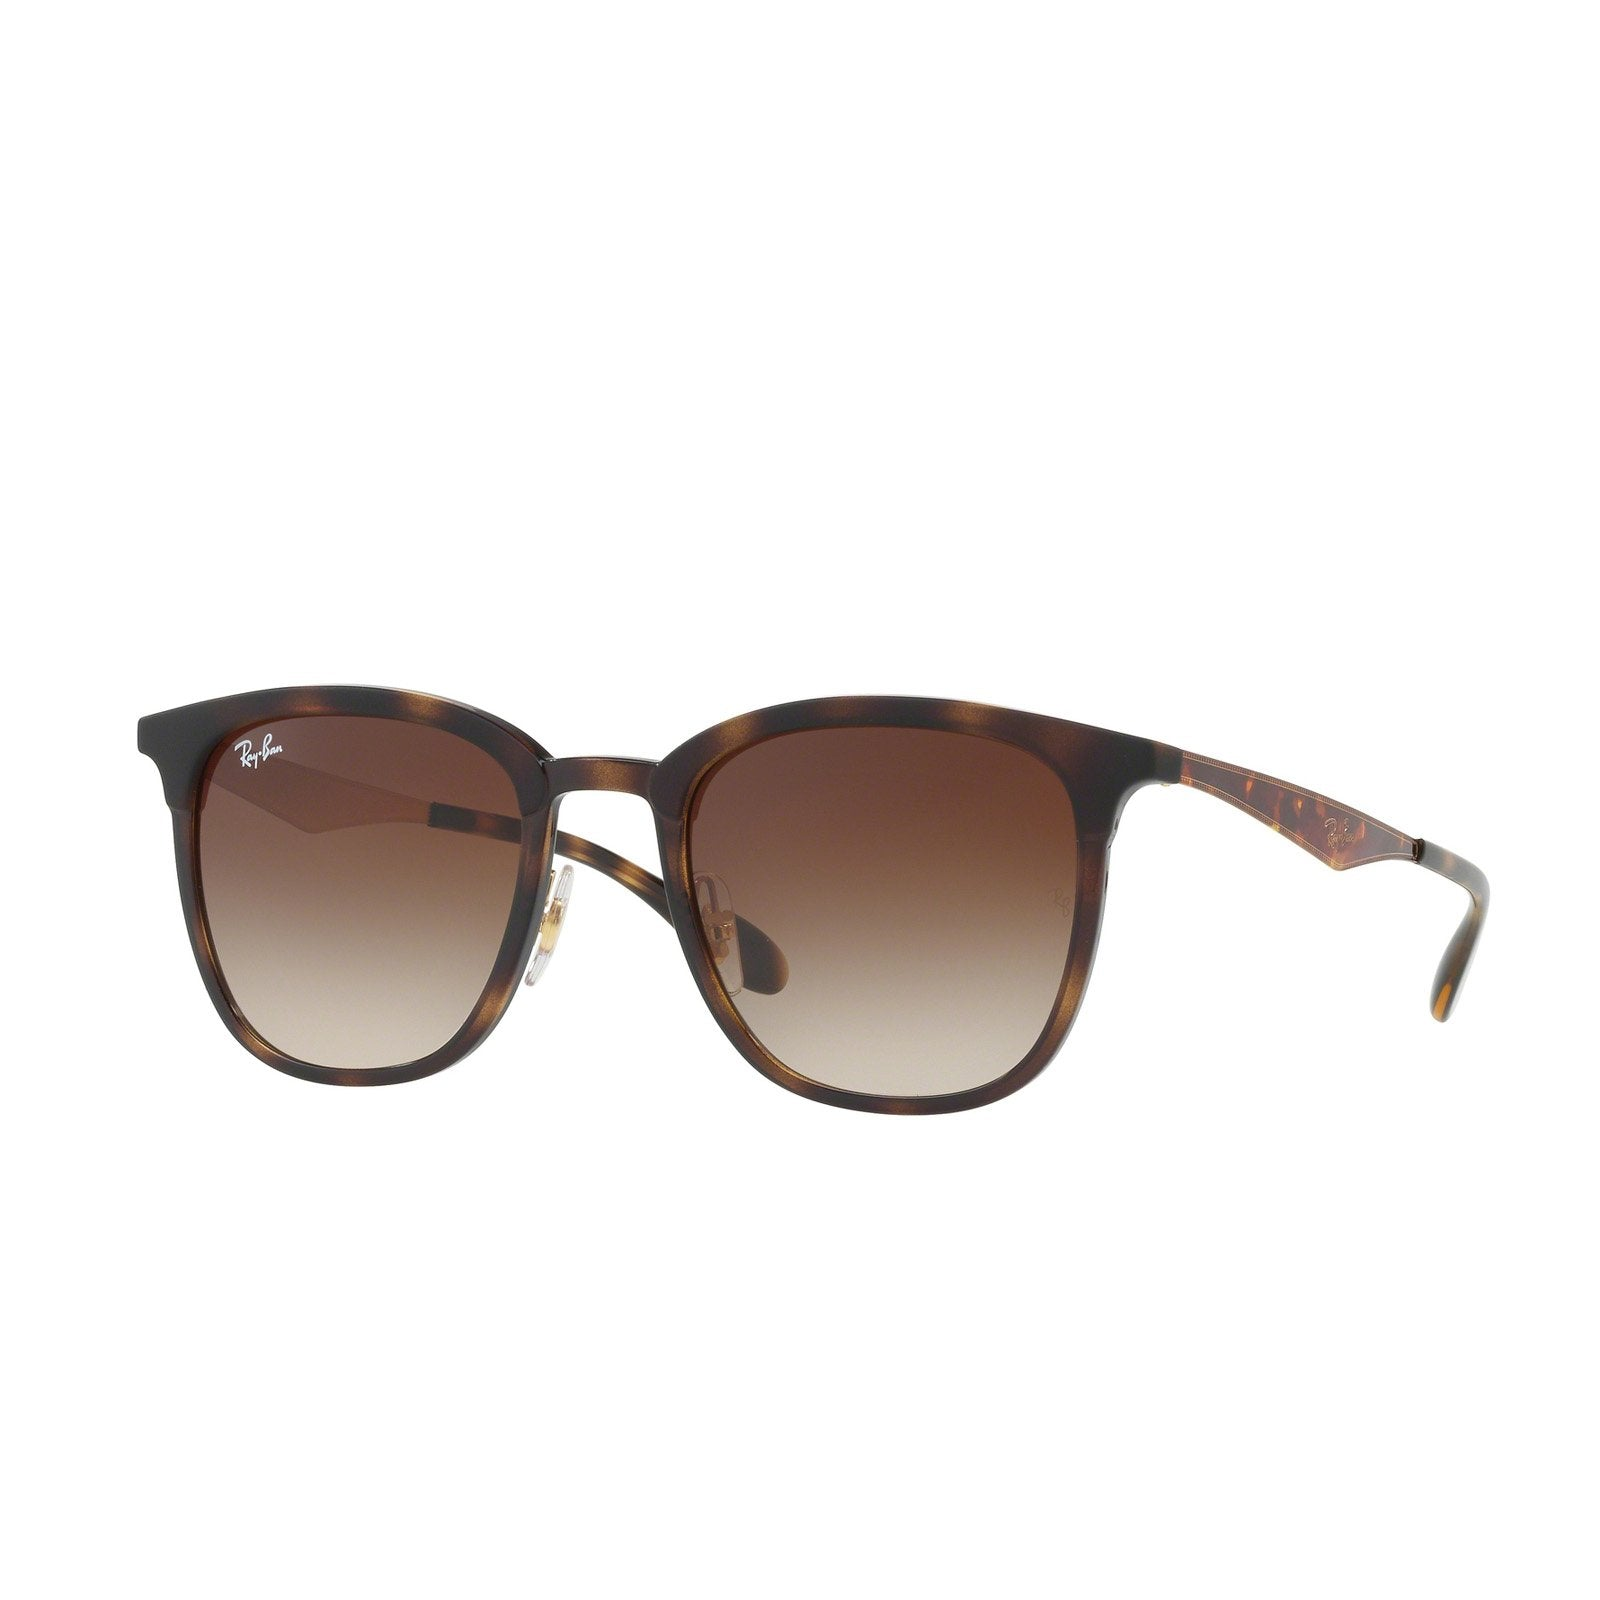 Ray-Ban RB4278 628313 Sunglasses